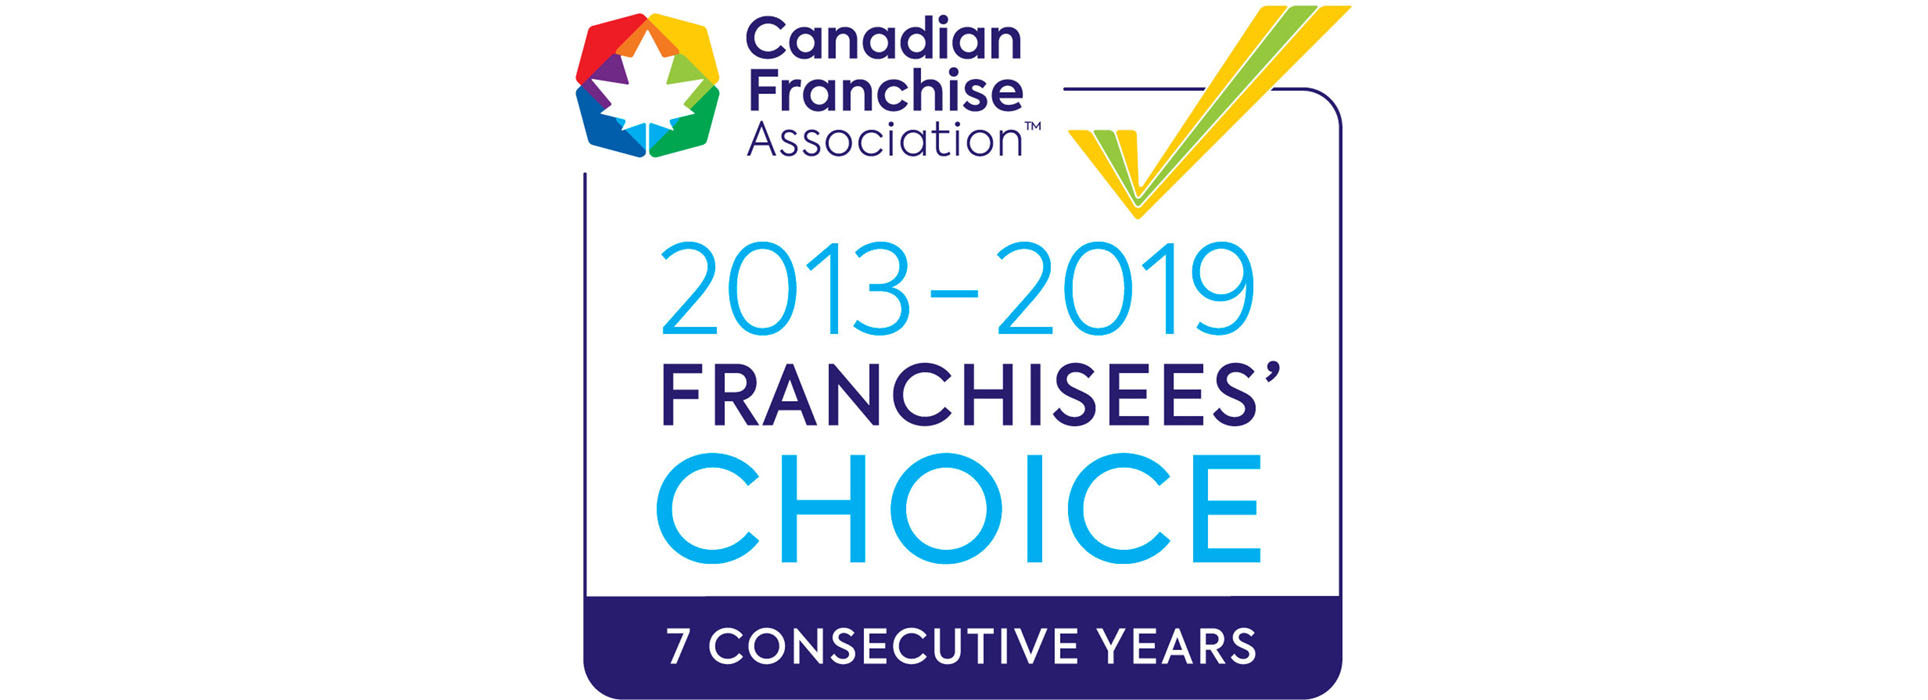 FranchiseesChoice_2019_7Yr reformated from lance